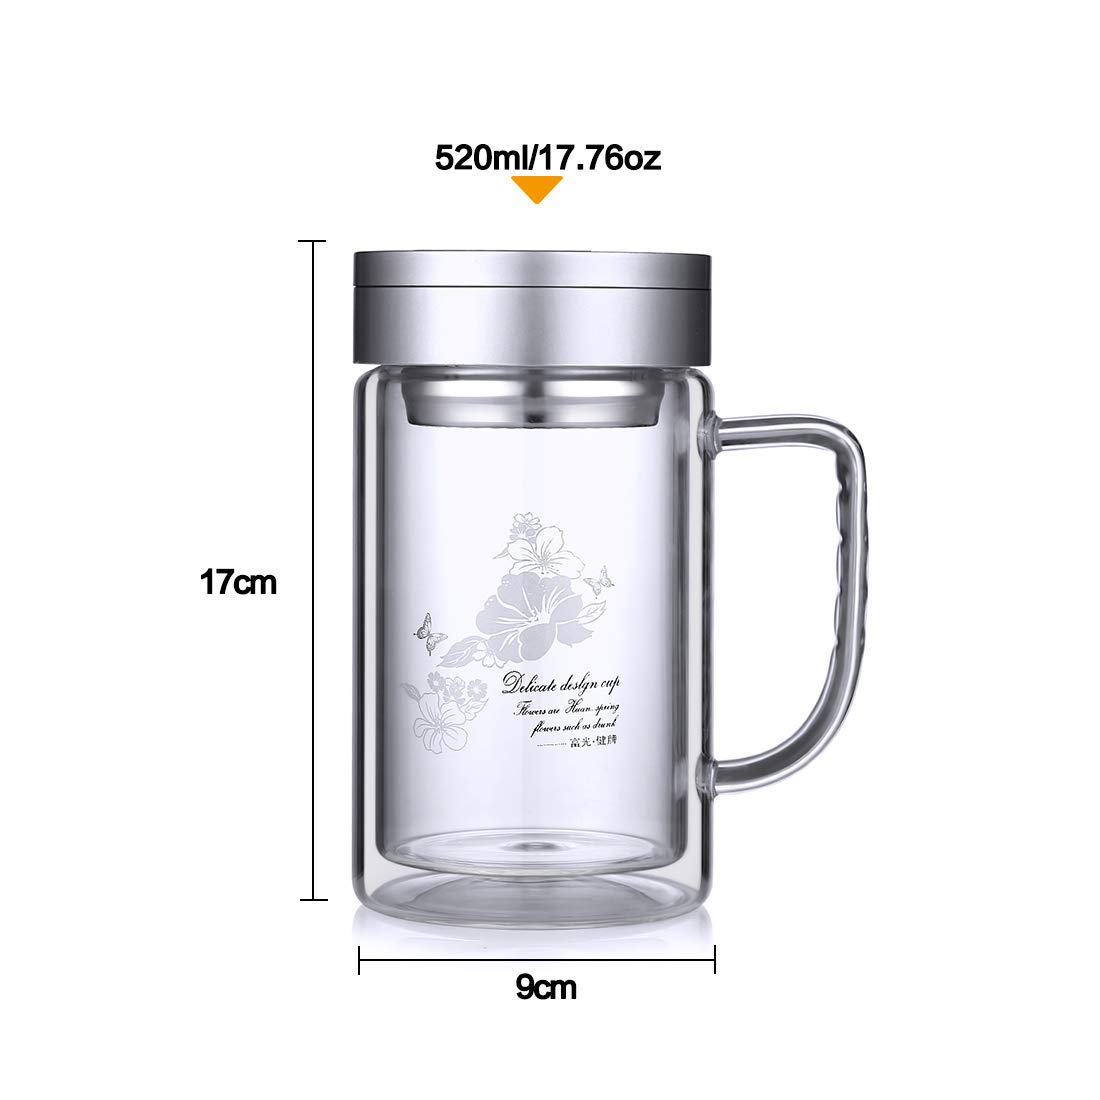 ONEISALL Office Tea Tumbler Tea Tumbler Glass Tea Cup with Stainless Steel Infuser Lucency Double Wall Glass Travel Mug